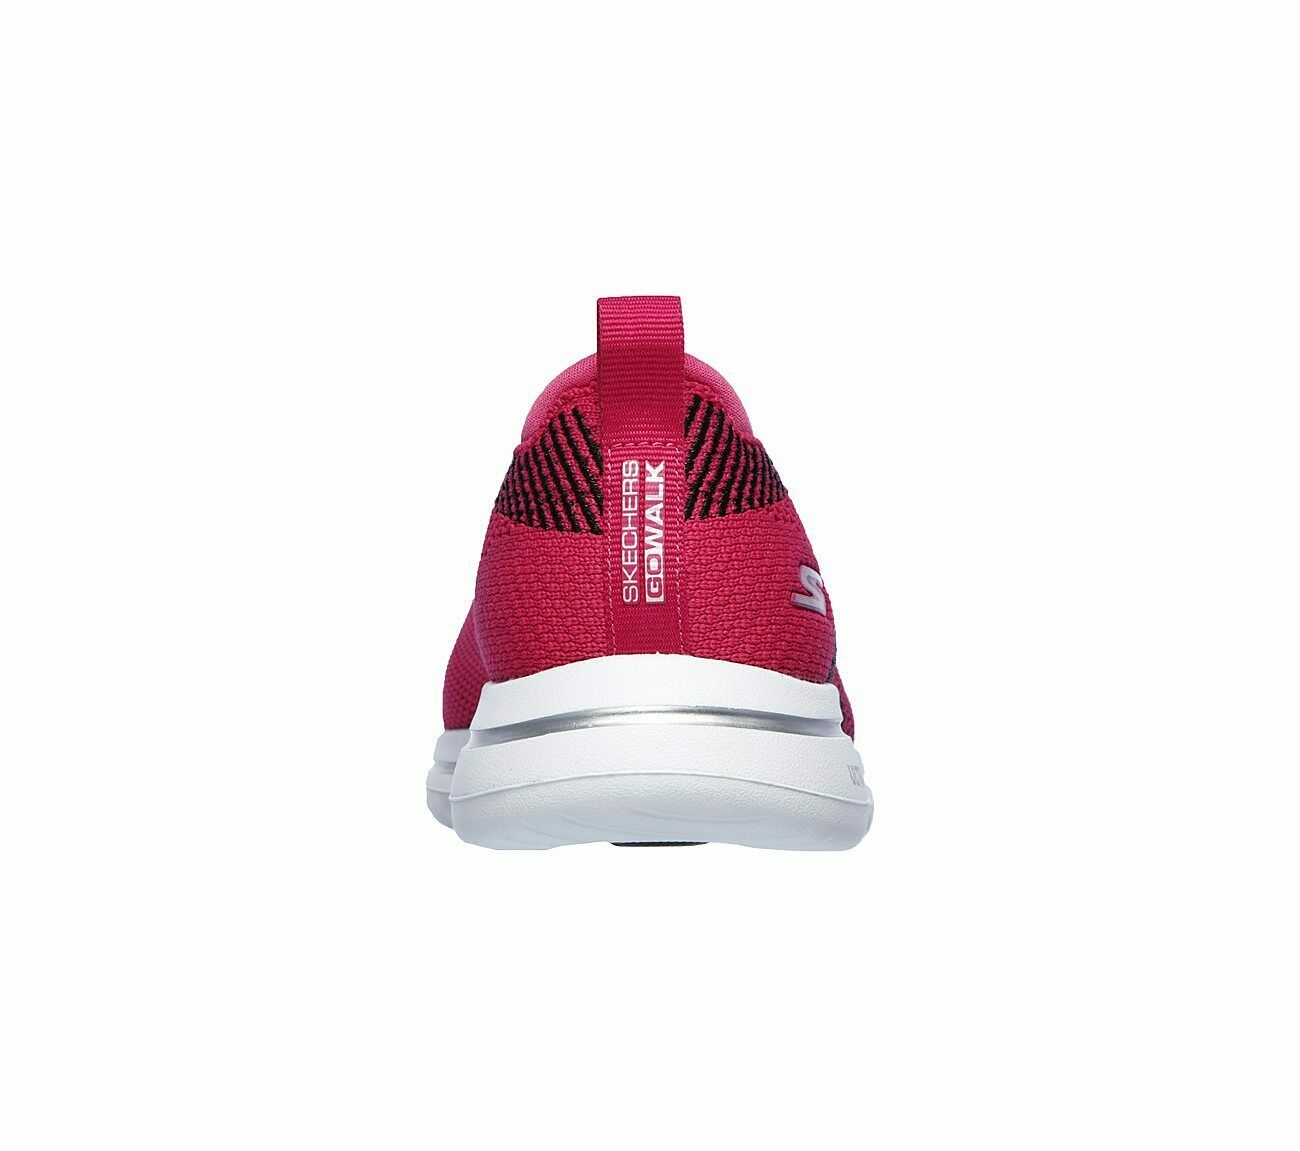 Skechers Shoes Pink Black Go Walk 5 Women's Casual Slip On Comfort Sporty 15900 image 6